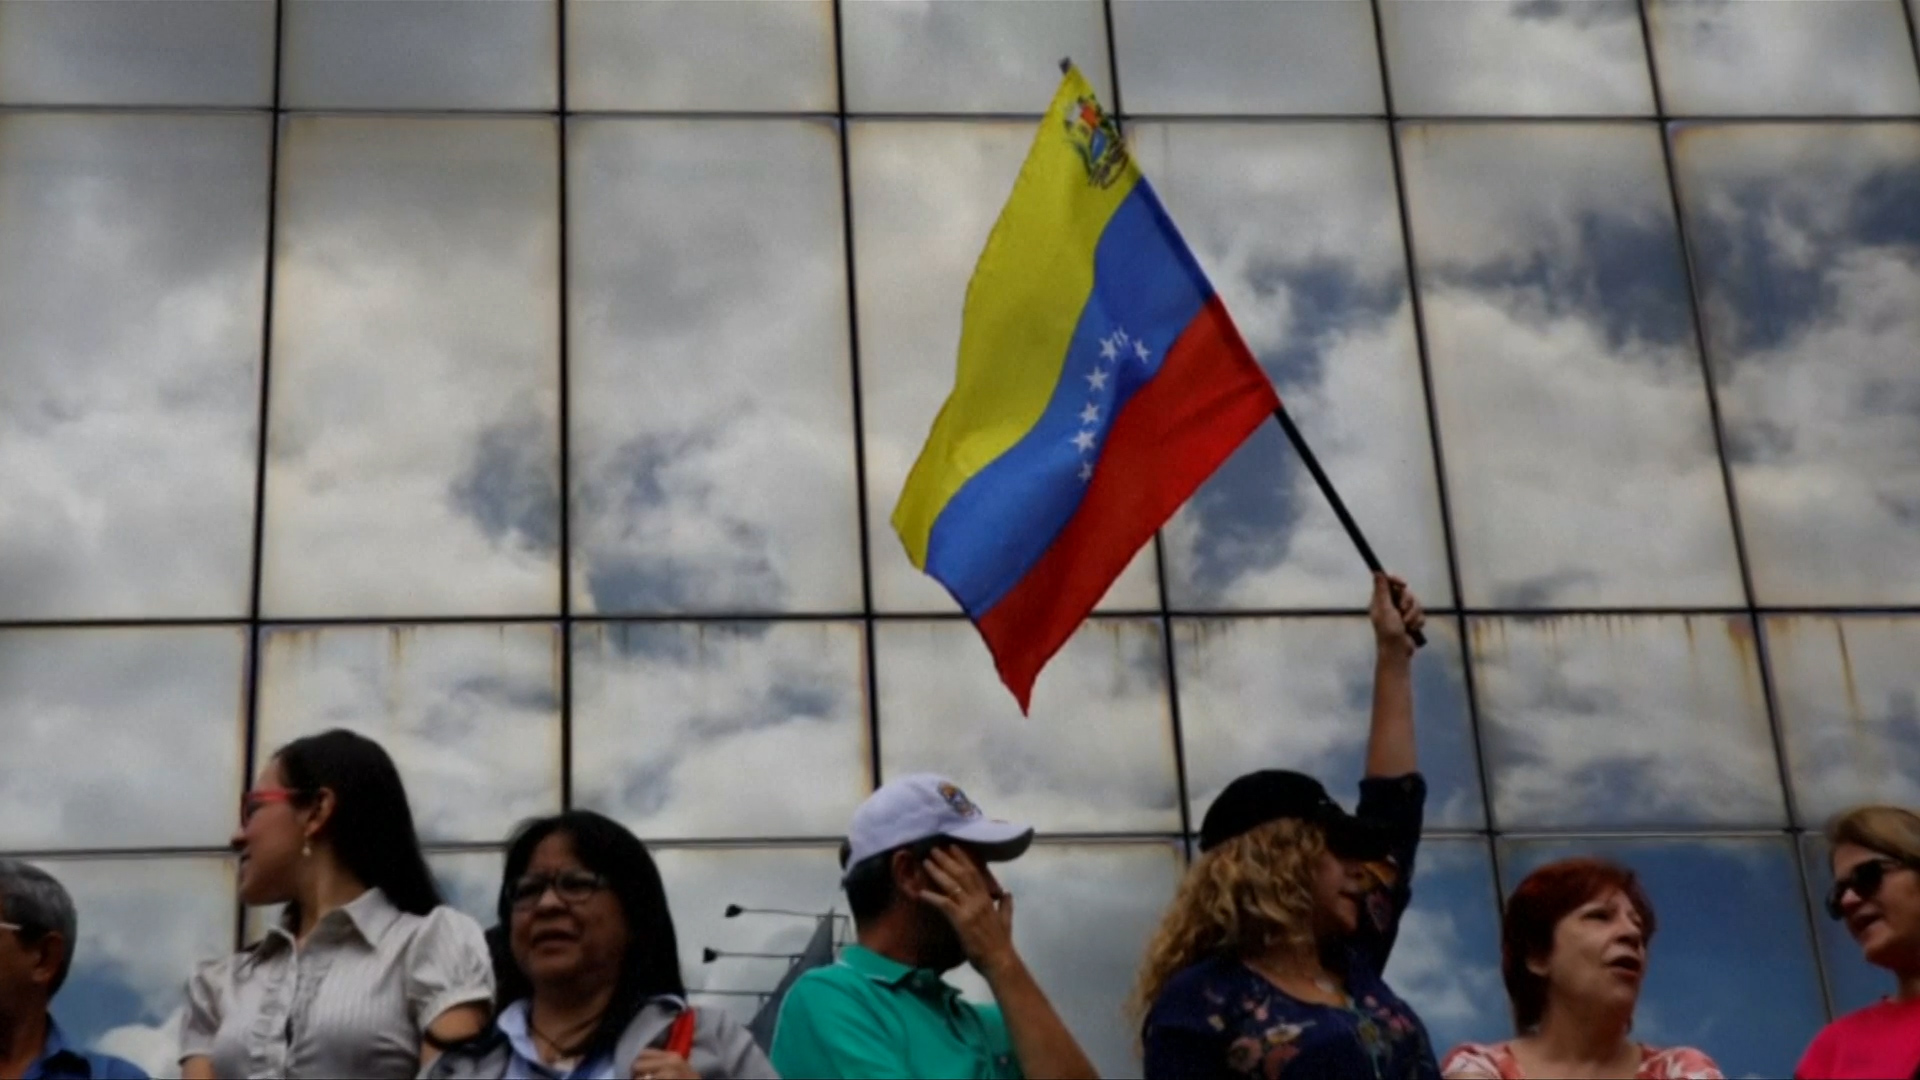 Win McNamee/Getty Images US to send humanitarian aid to Venezuela, Bolton says